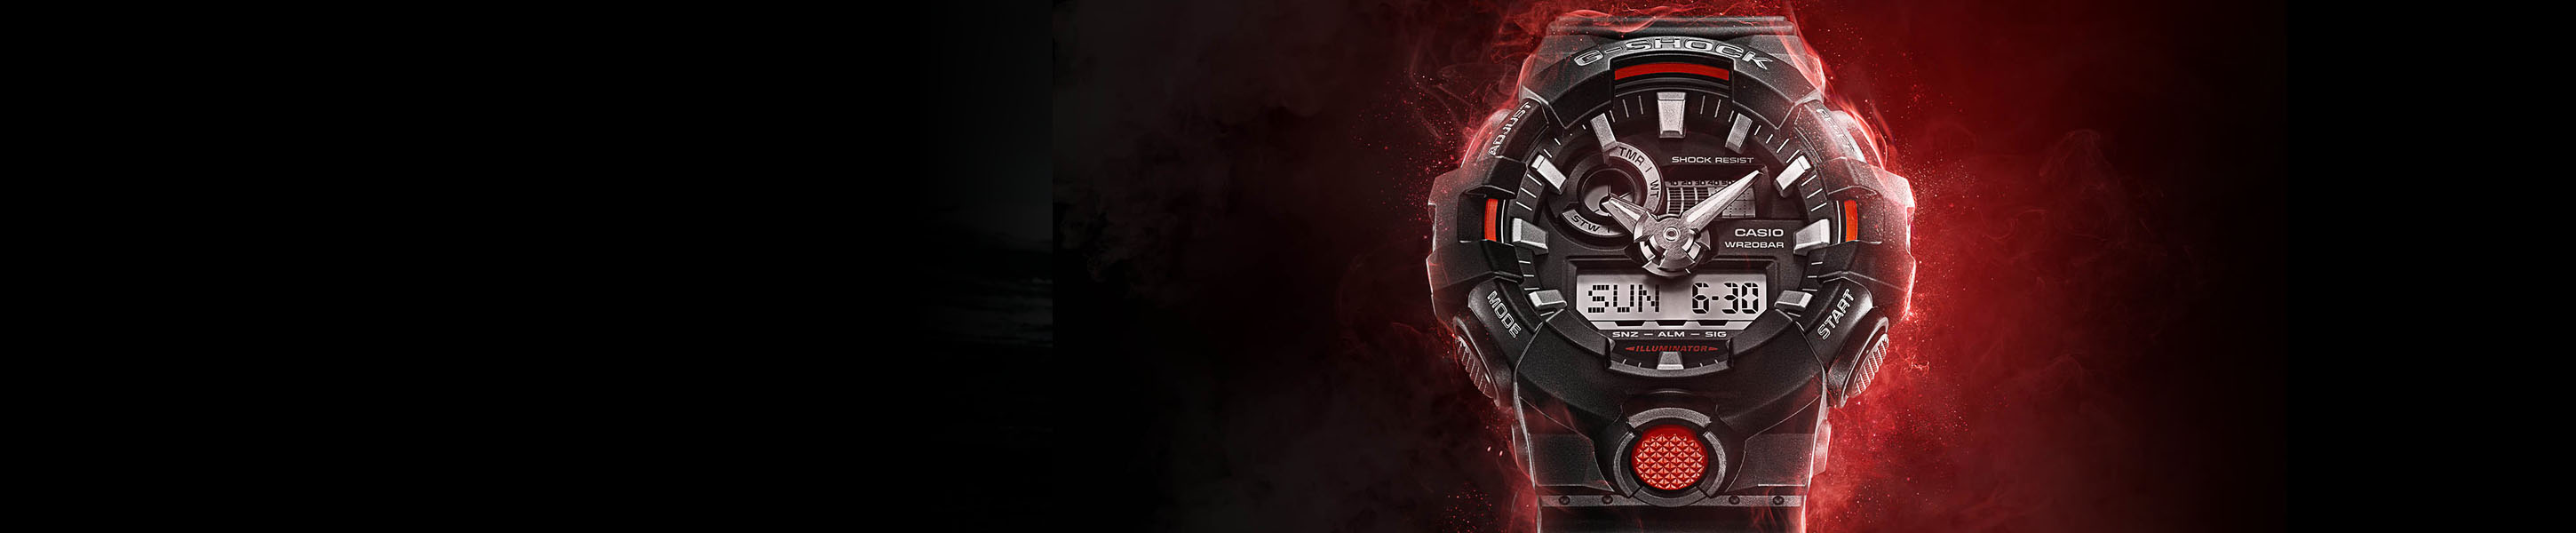 Absolute Toughness, Featuring the G-SHOCK GA700.